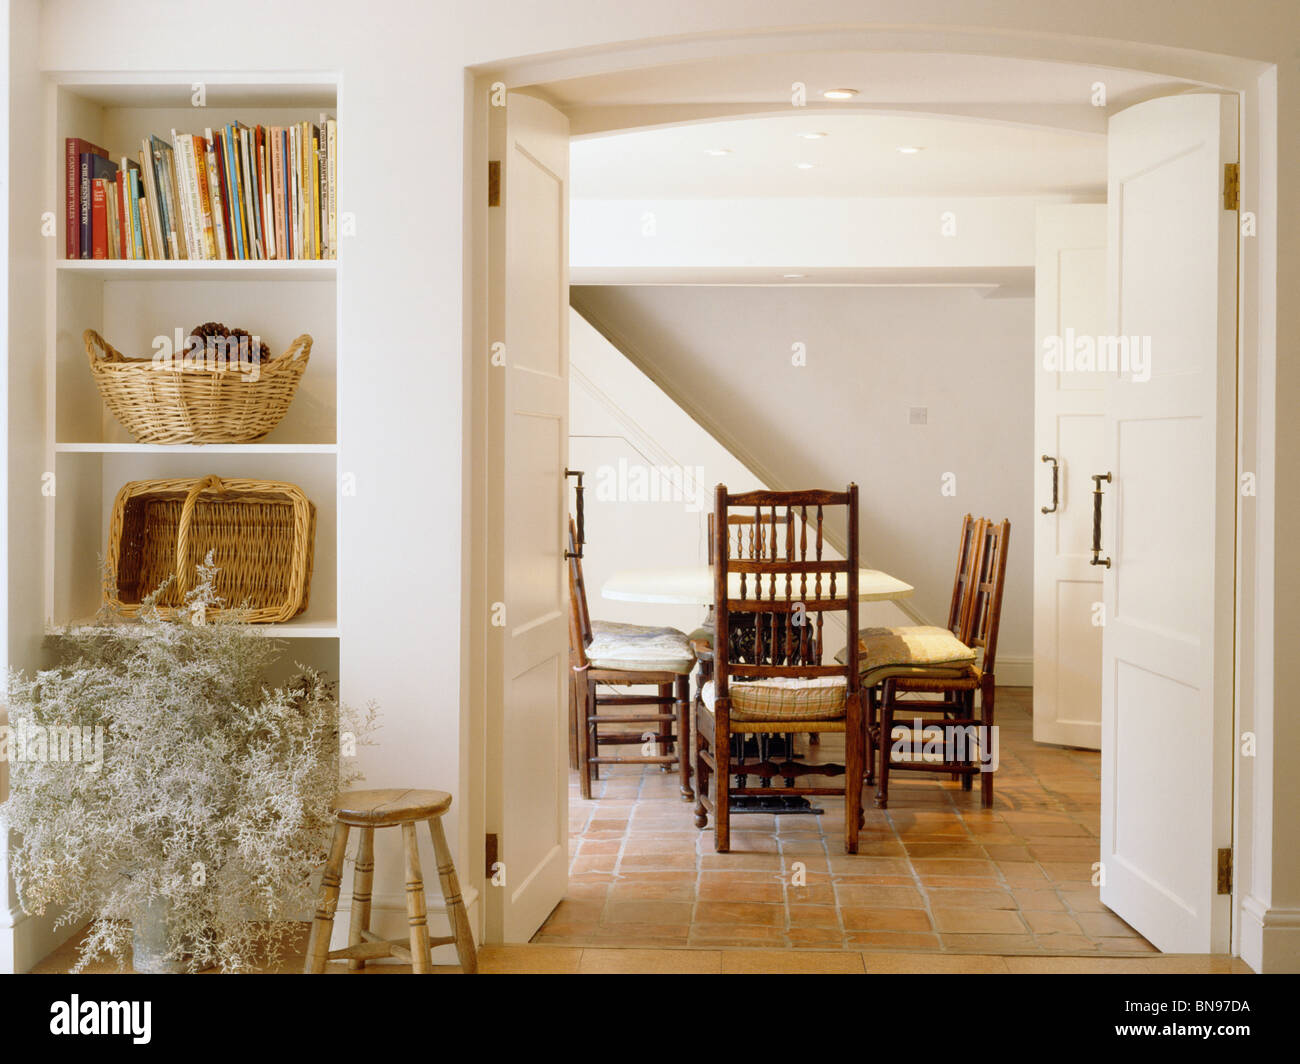 Alcove Shelves Beside Open Double Doors To Cream Country Dining Room